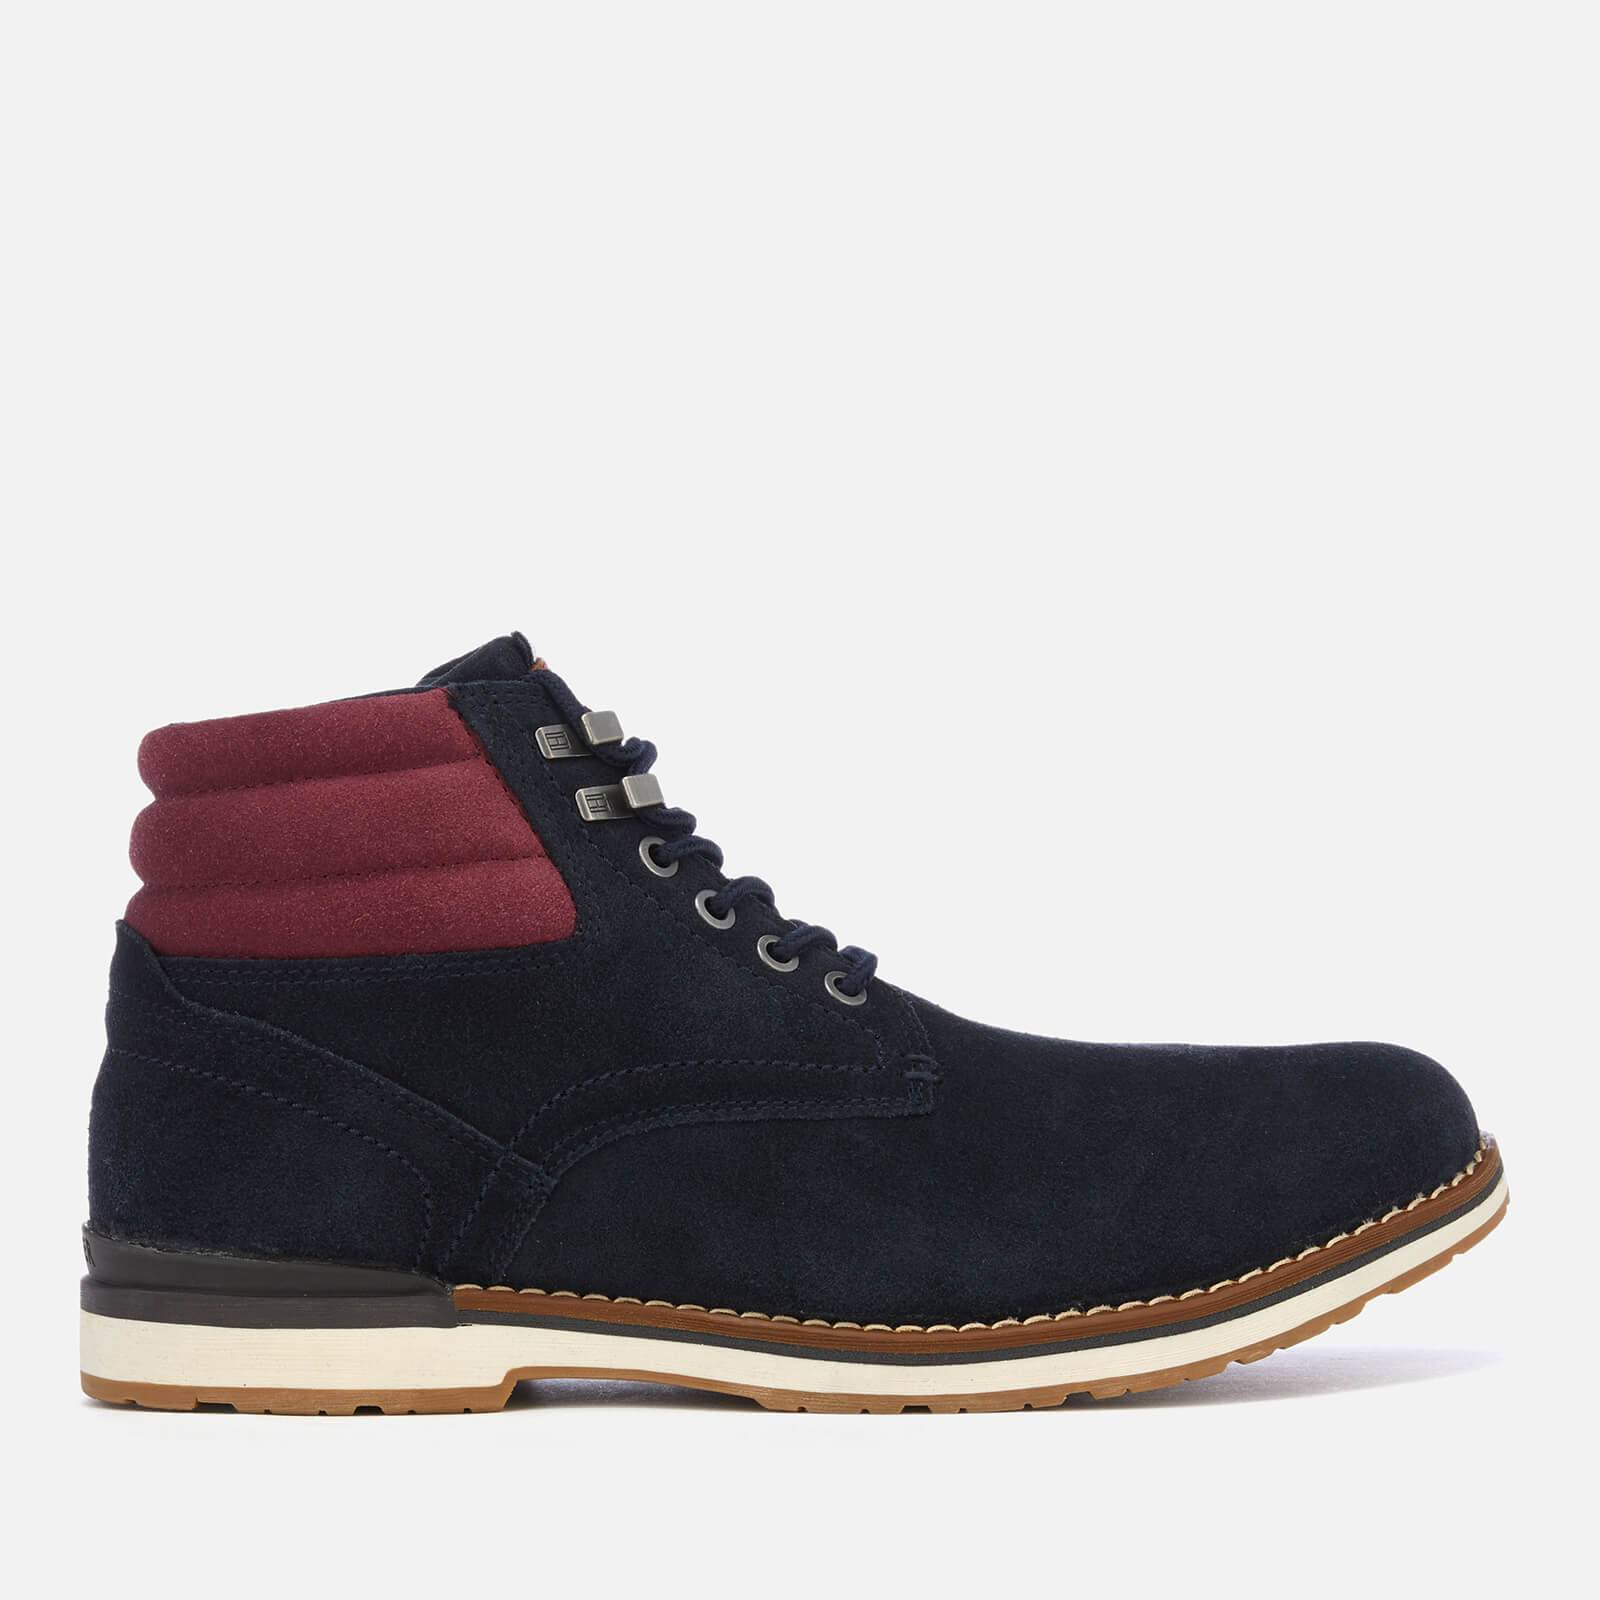 Tommy Hilfiger Men's Outdoor Suede Boots - Midnight - UK 7 - Blue